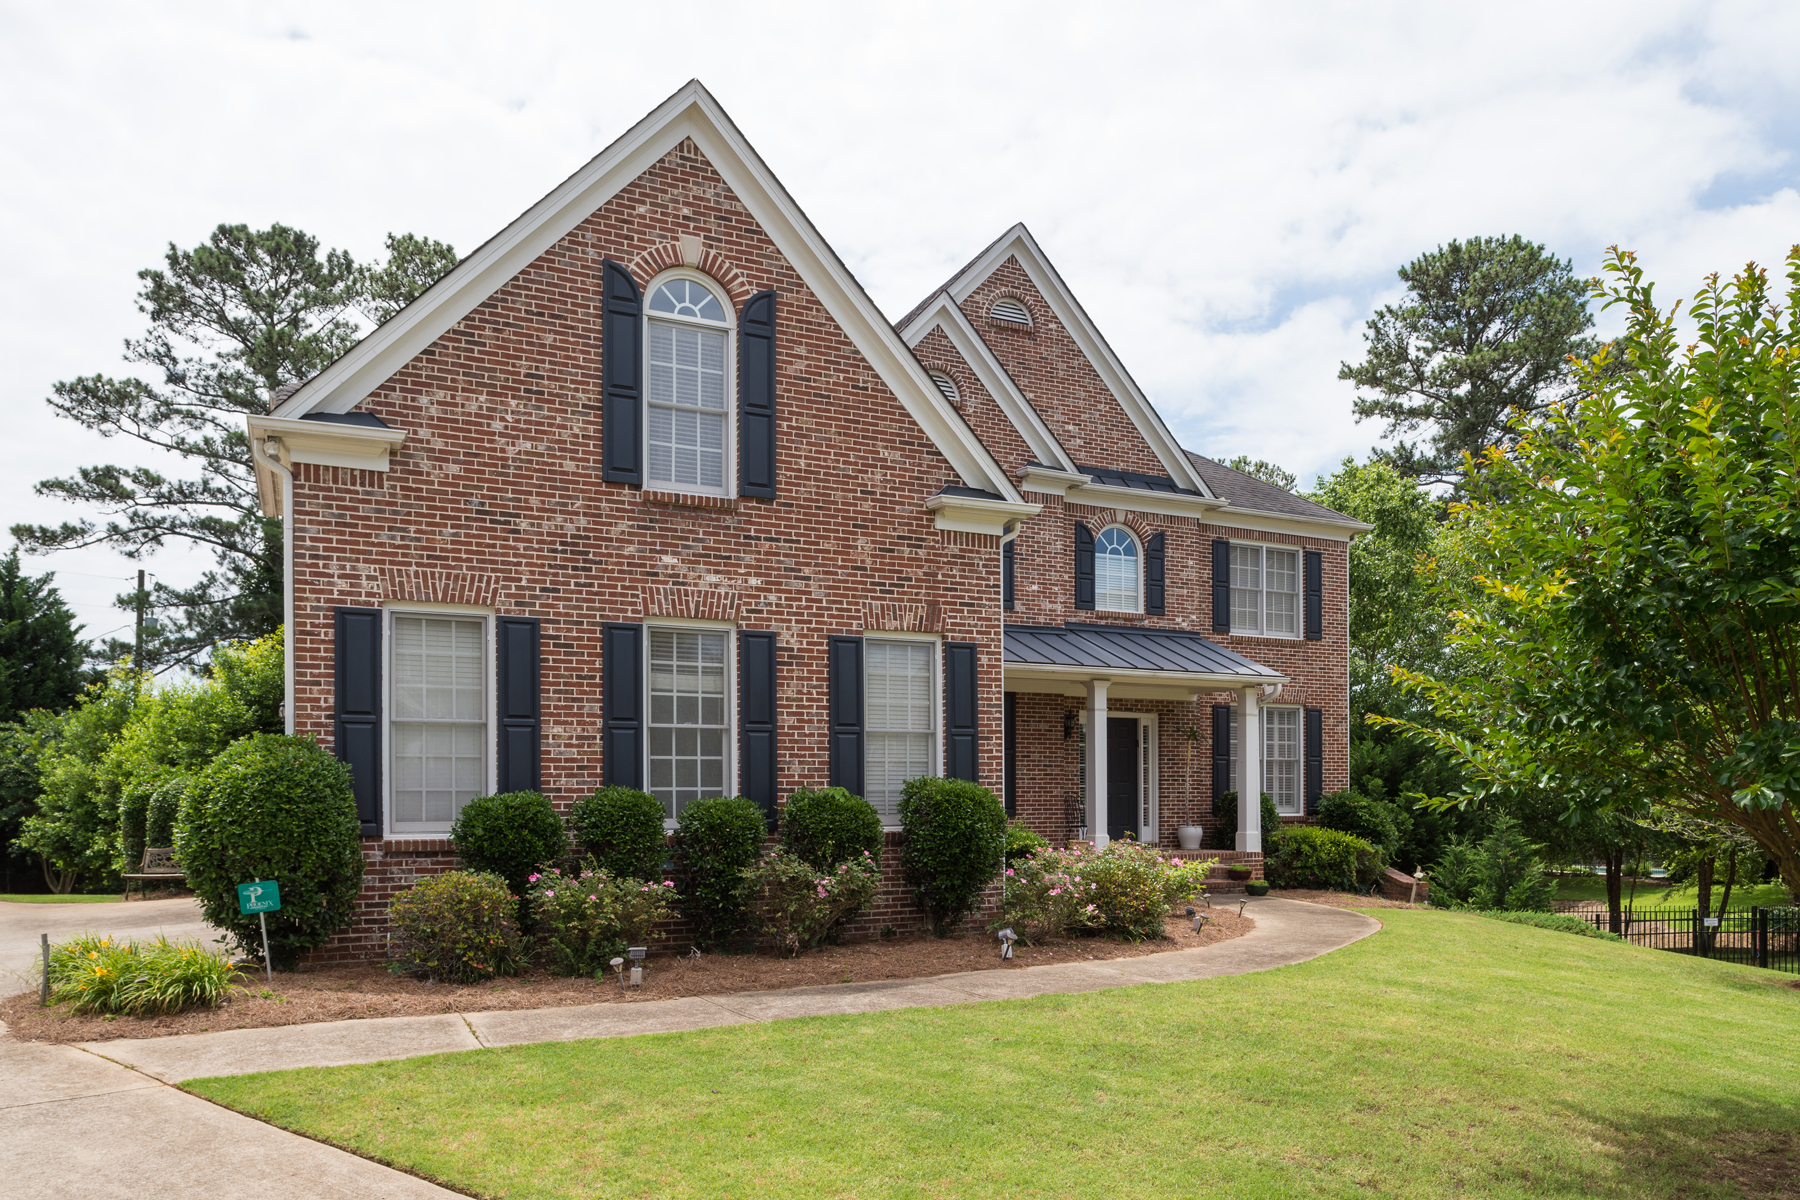 Vivienda unifamiliar por un Venta en Amazing Brick Home in East Cobb Finest School District! 918 Saints Court Marietta, Georgia, 30068 Estados Unidos